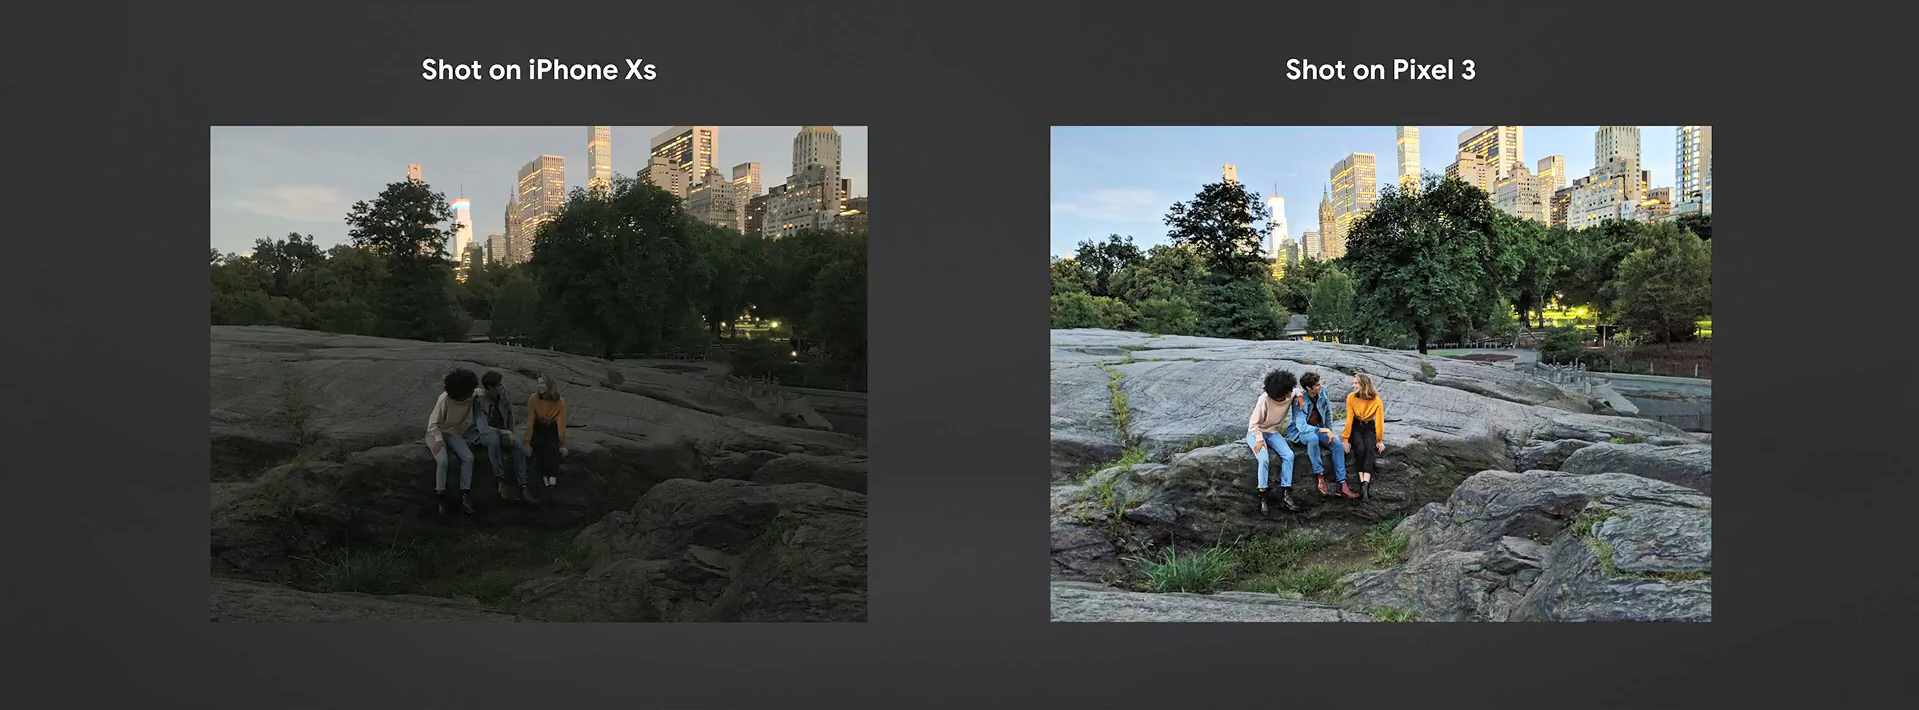 Pixel 3 vs iPhone XS: Which camera is better?